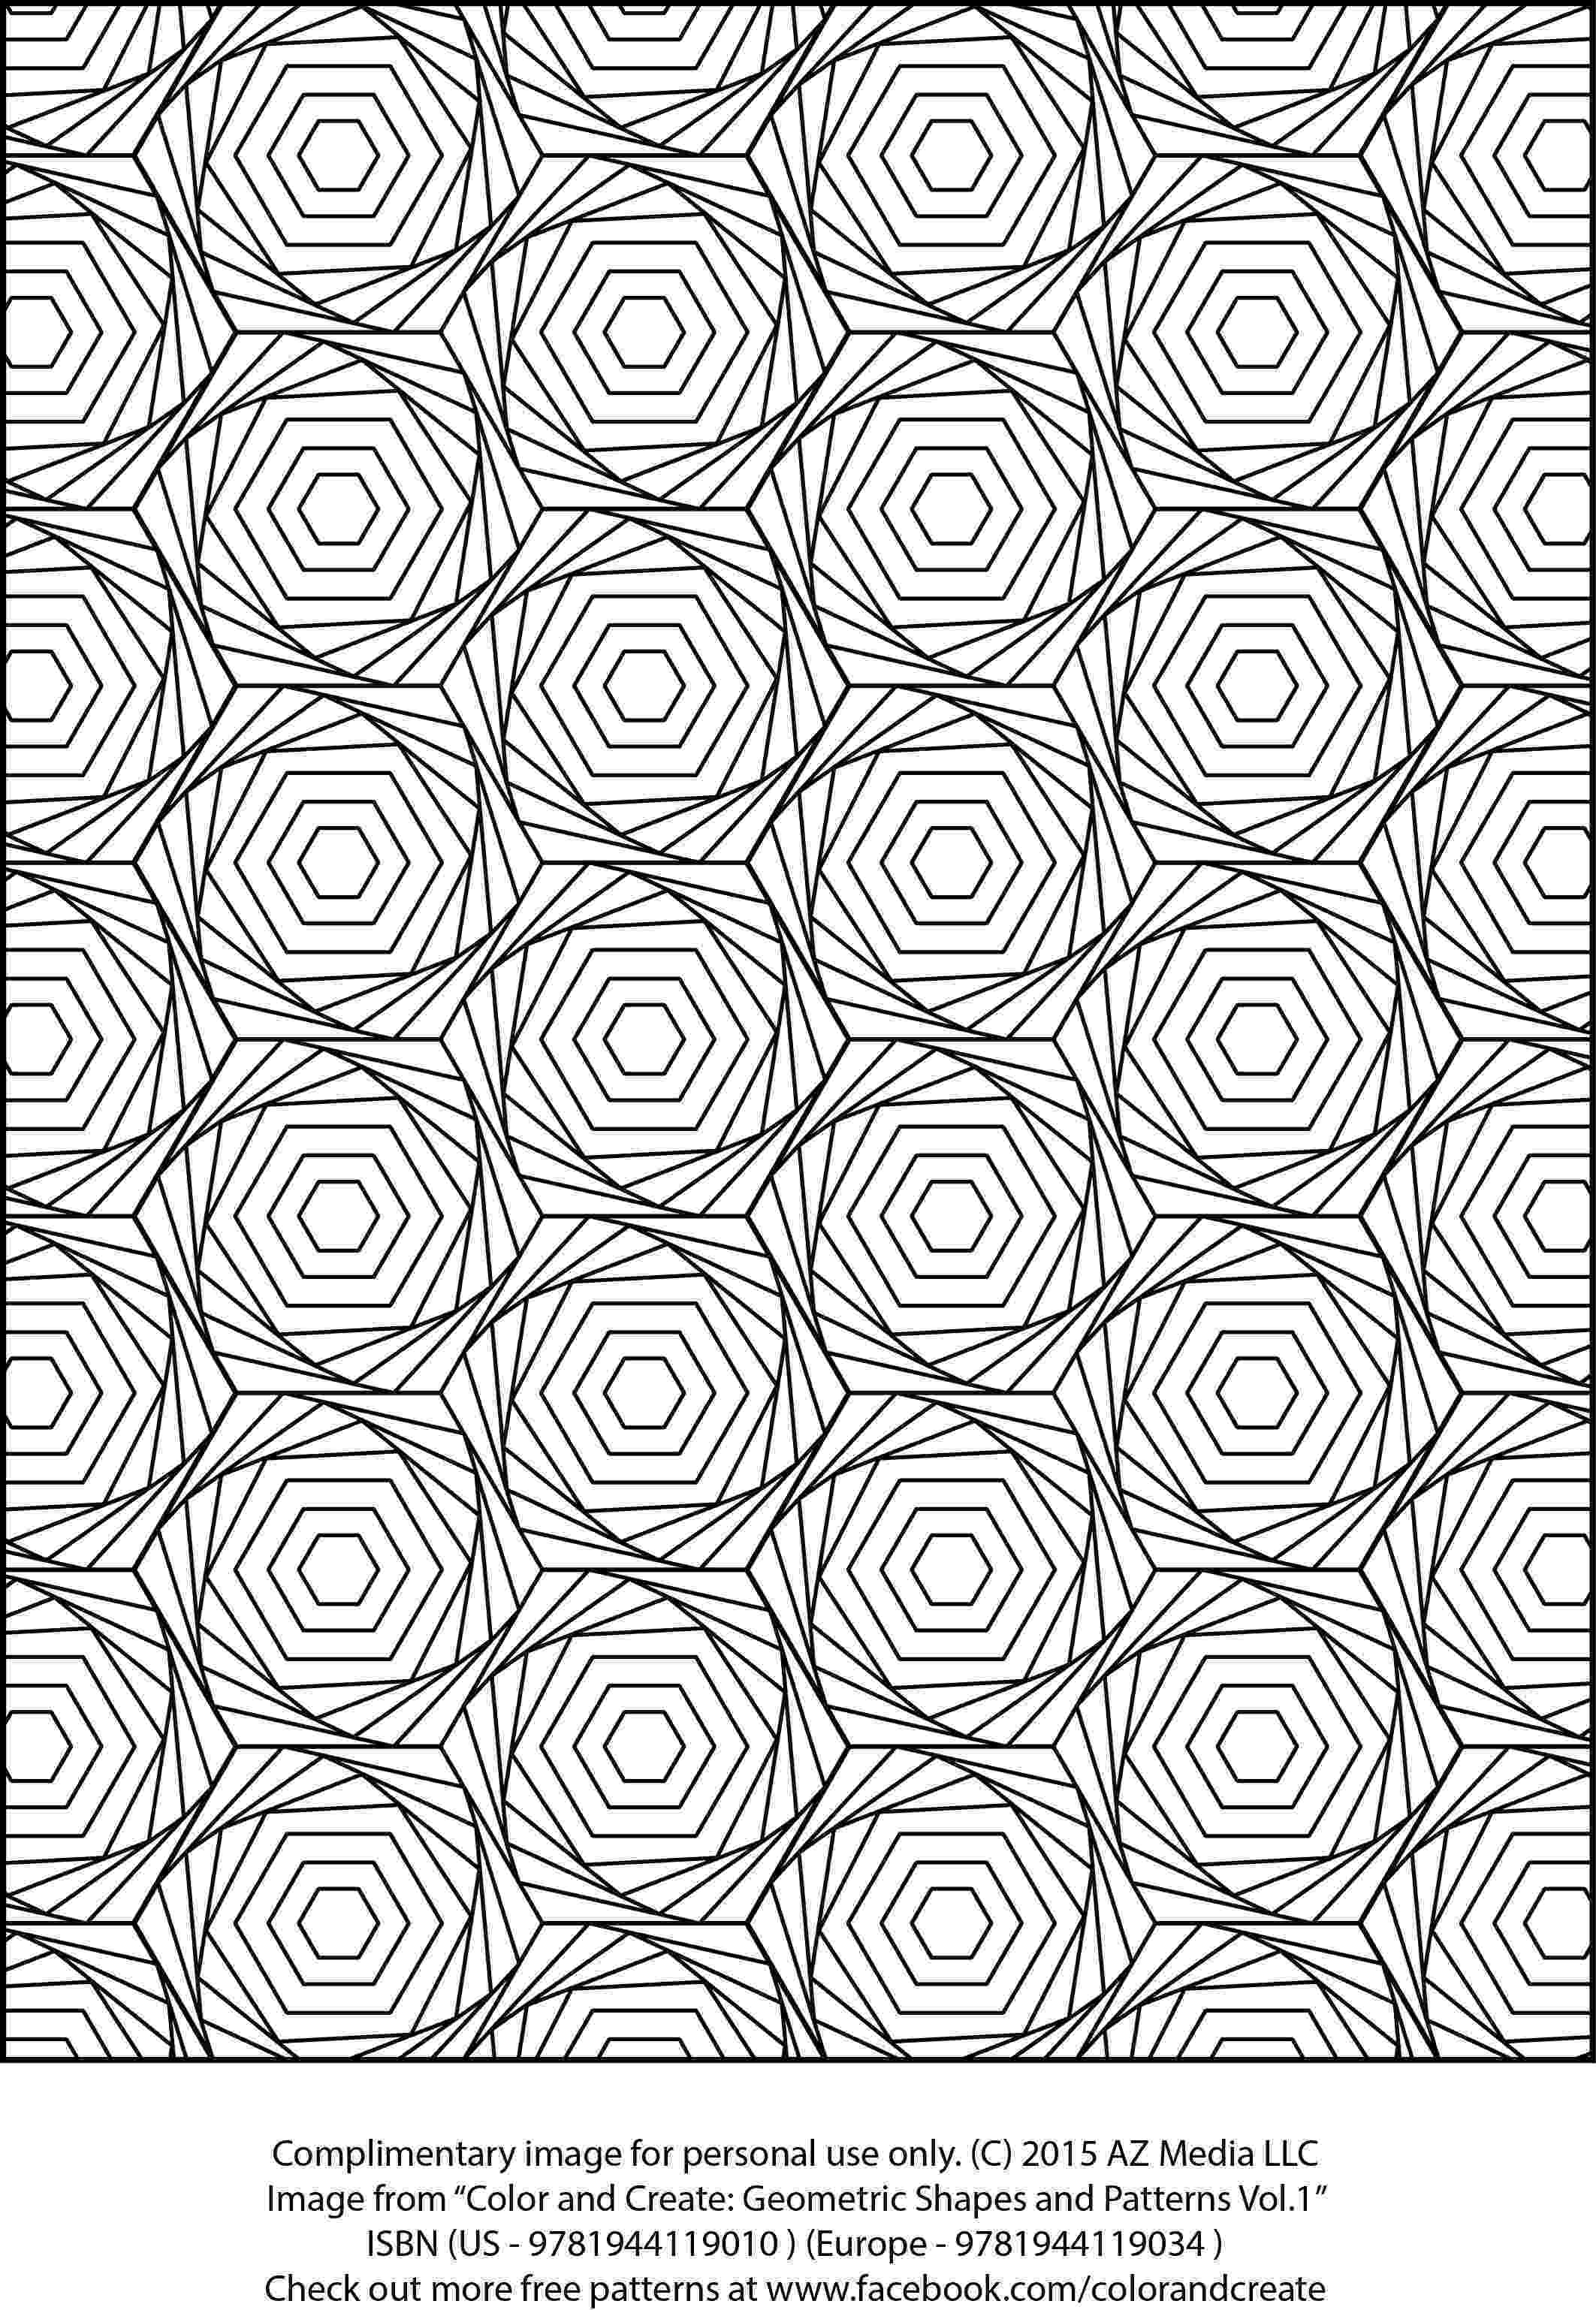 patterned coloring pages complimentary coloring sheet from quotcolor and create patterned coloring pages